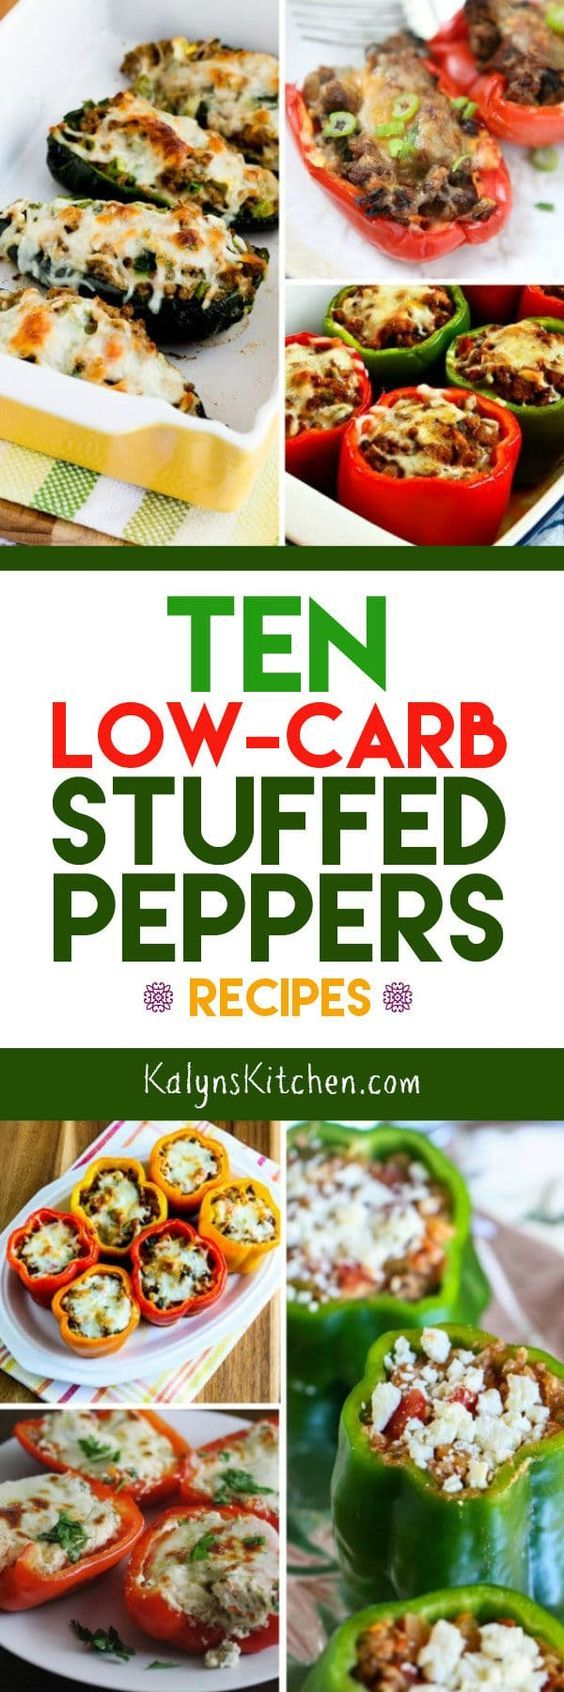 Stuffed Peppers are such a good idea for a low-carb or Keto meal, and here are Ten Low-Carb Stuffed Peppers Recipes. And of course these low-carb stuffed peppers are also gluten-free; enjoy! [found on KalynsKitchen.com]